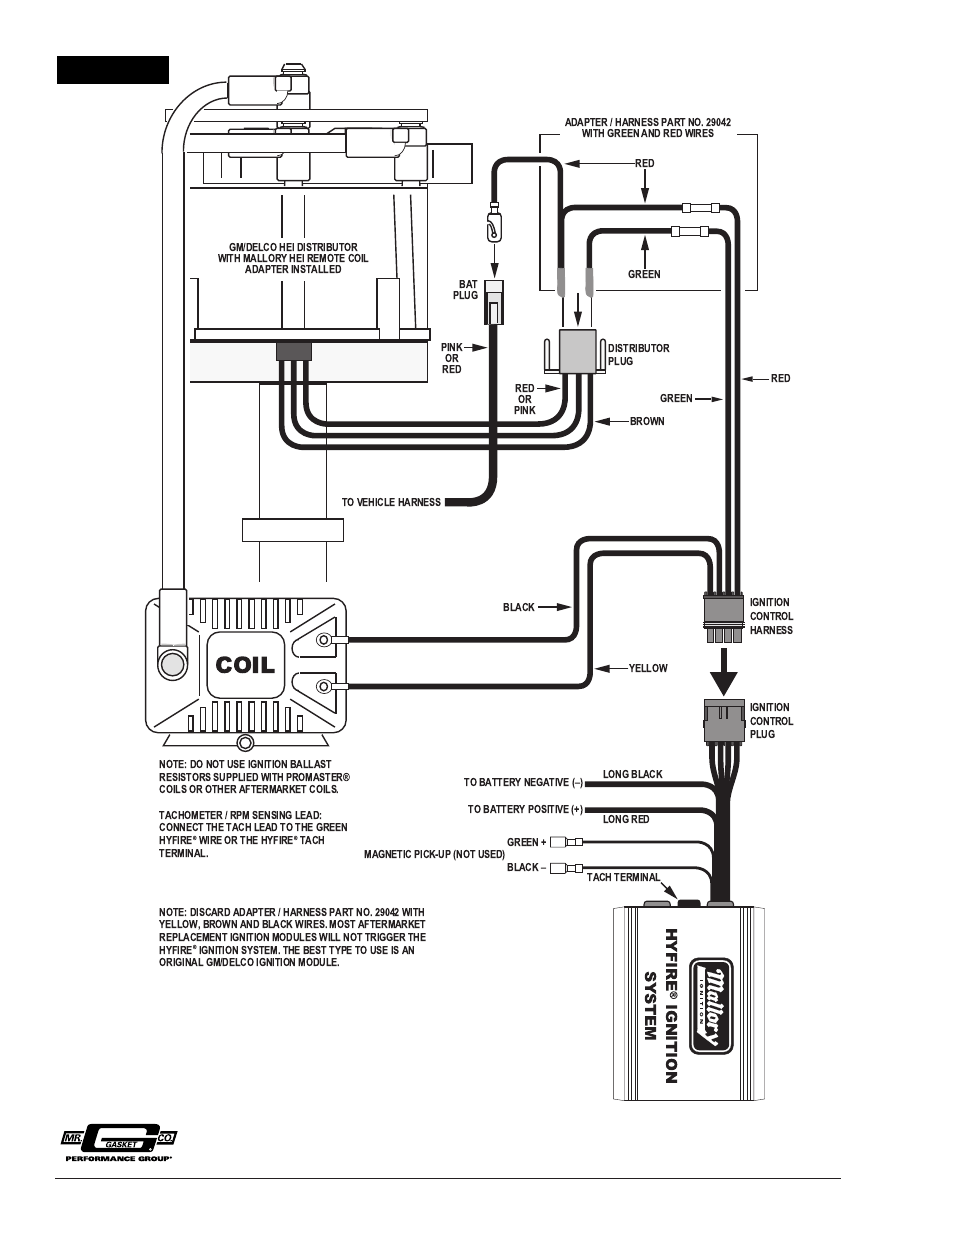 Chevy Distributor Wiring Diagram on chevy 4.3 sensor locations, chevy 4.3 spark plug order, chevy 4.3 tbi, chevy 4.3 timing marks, chevy 4.3 power, chevy 4.3 specifications, chevy 4.3 carburetor, chevy 4.3 exhaust, chevy 4.3 flywheel, chevy 4.3 oil filter, chevy 4.3 parts, chevy 4.3 dimensions, chevy 4.3 cylinder head, chevy 4.3 oil sending unit, chevy 4.3 oil pump, chevy 4.3 engine, chevy 4.3 water pump, chevy 4.3 spark plug gap,